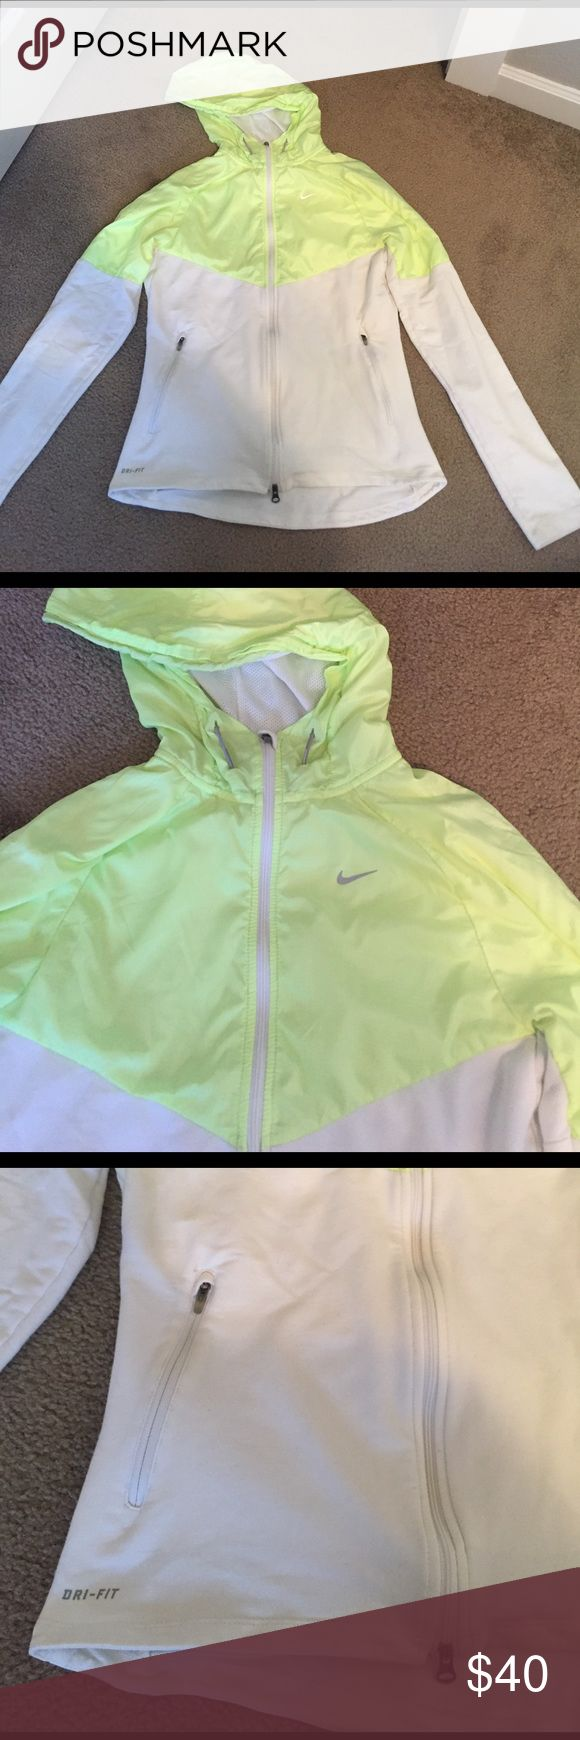 Women's Nike Running Jacket Super cute white and yellow women's running jacket from Nike. Dri-fit, gently worn and in good condition, size small. Nike Tops Sweatshirts & Hoodies